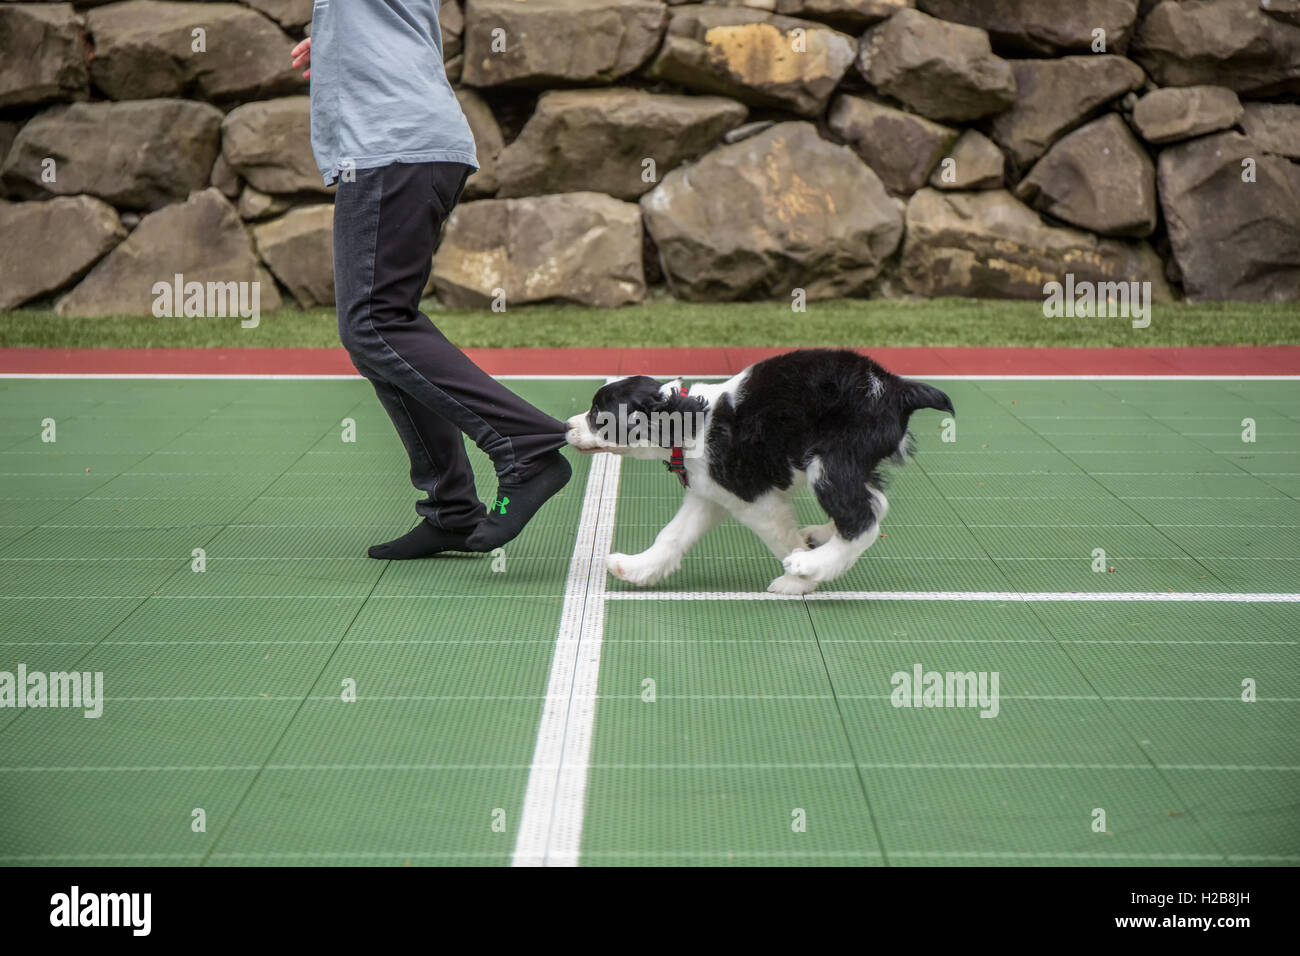 Two month old Springer Spaniel puppy, Tre, biting the pants let of his seven year old owner as he chases her in - Stock Image